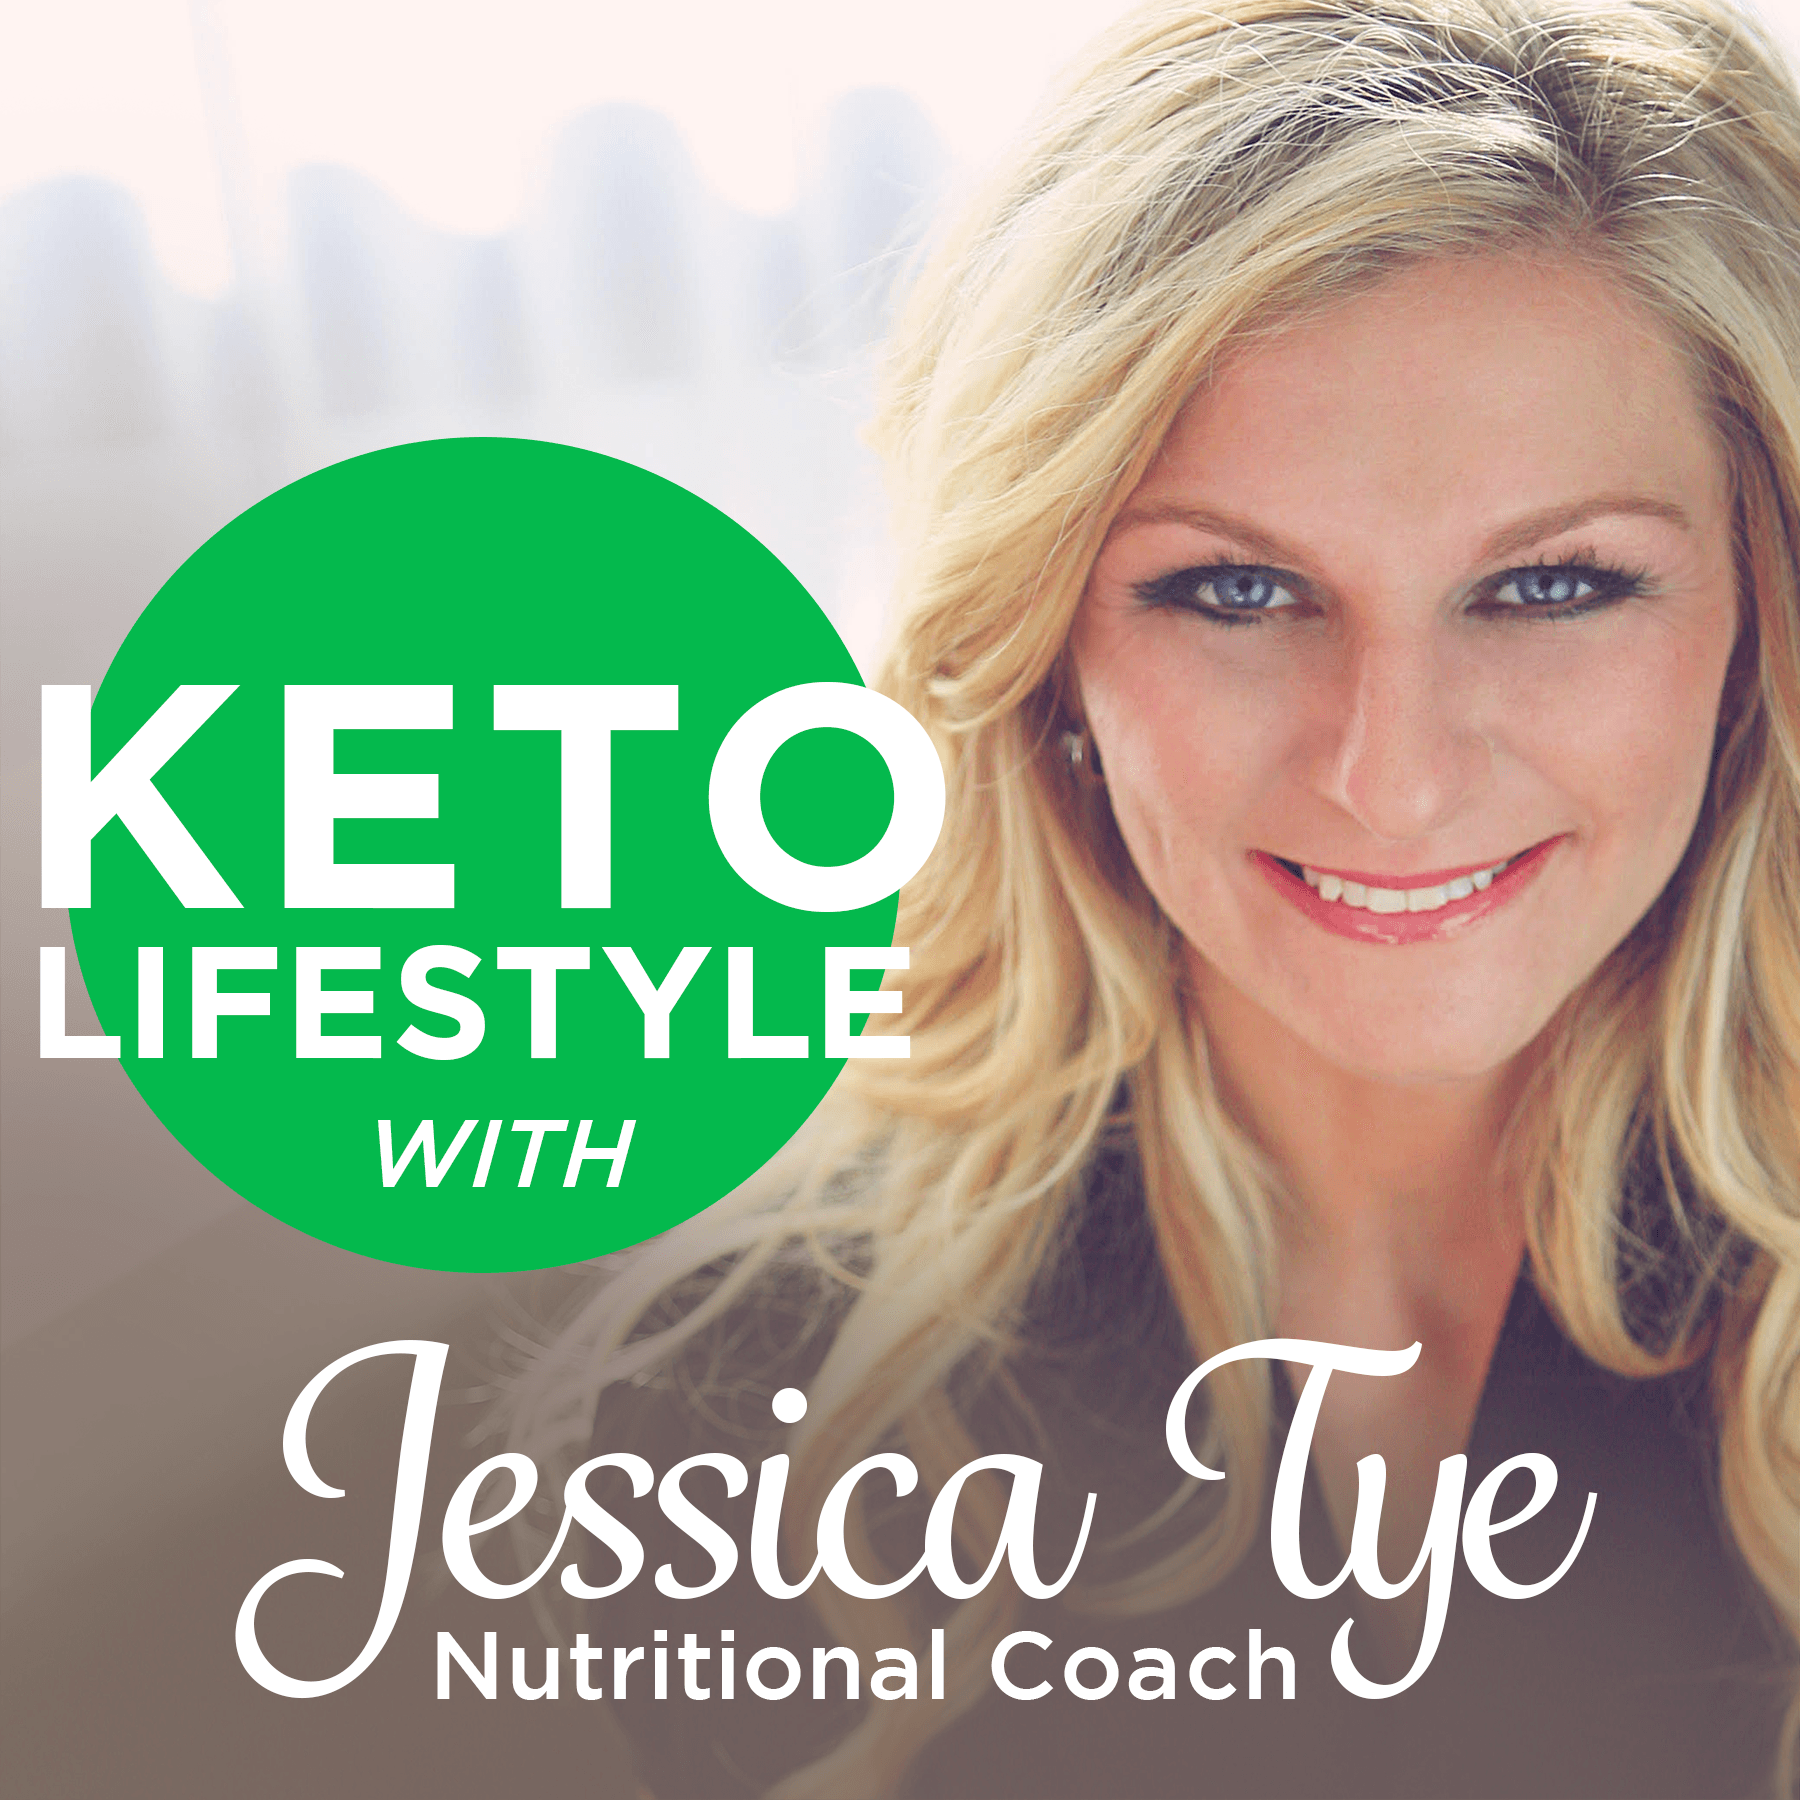 Episode 44: Interview with Keto Health Coach Nissa Graun where she gives us the scoop on how she accomplished a 140lb weight loss AND keeps it off effortlessly!